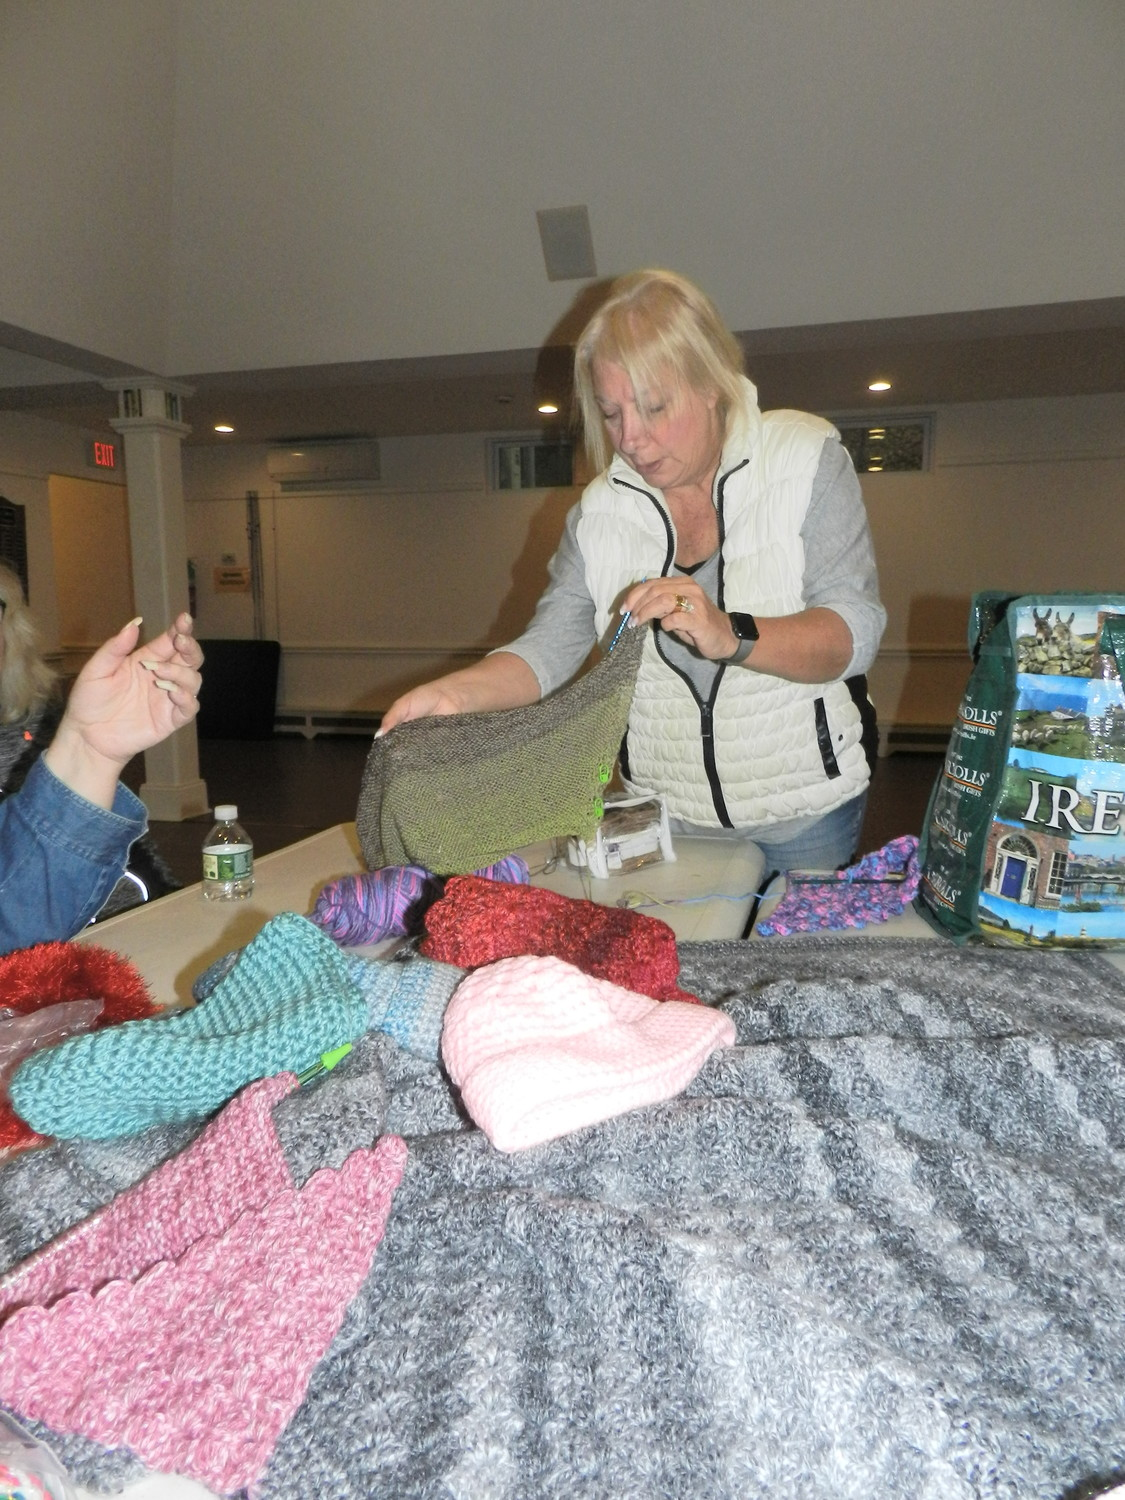 Roseann Fochi, of Bayville, prepared to work on a Knitted Knocker, an alternative breast prosthetic.